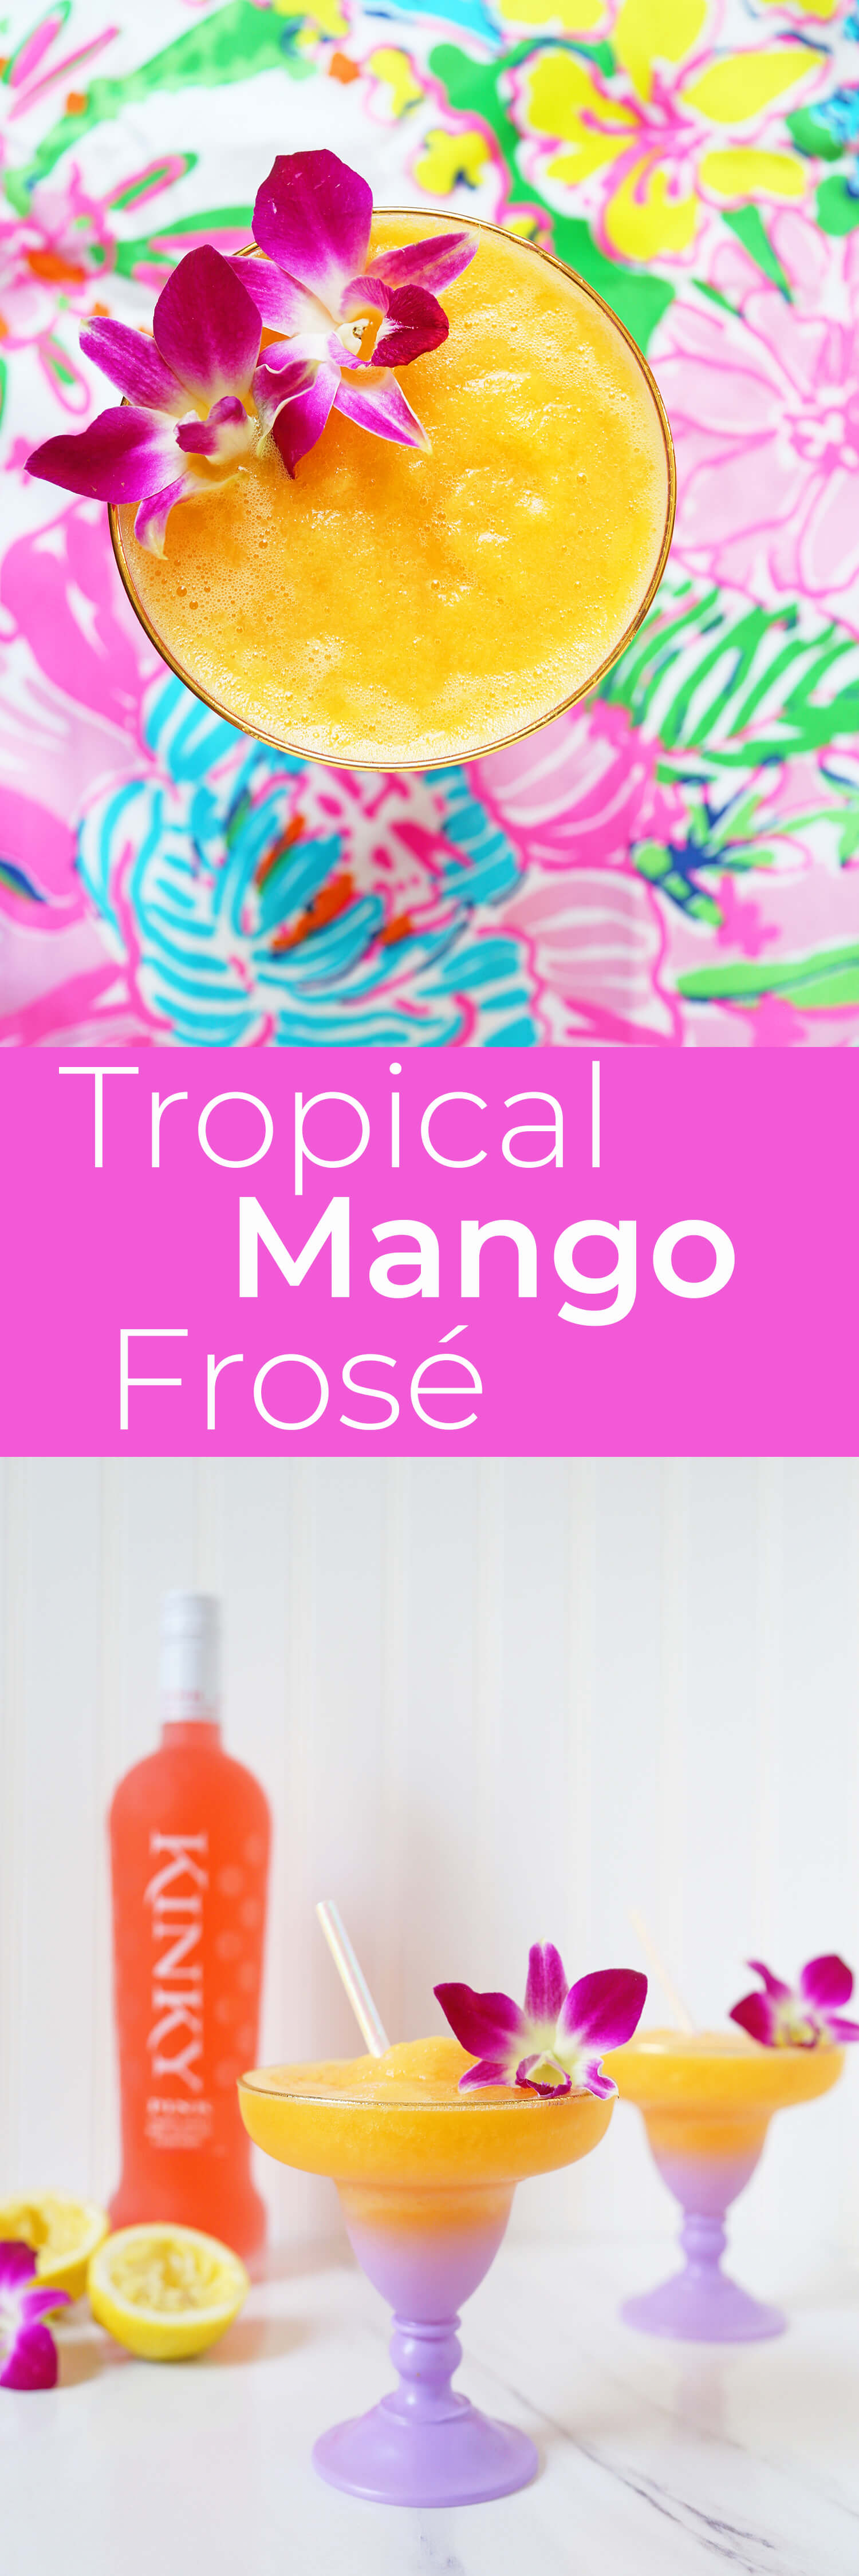 Tropical Mango Frosé